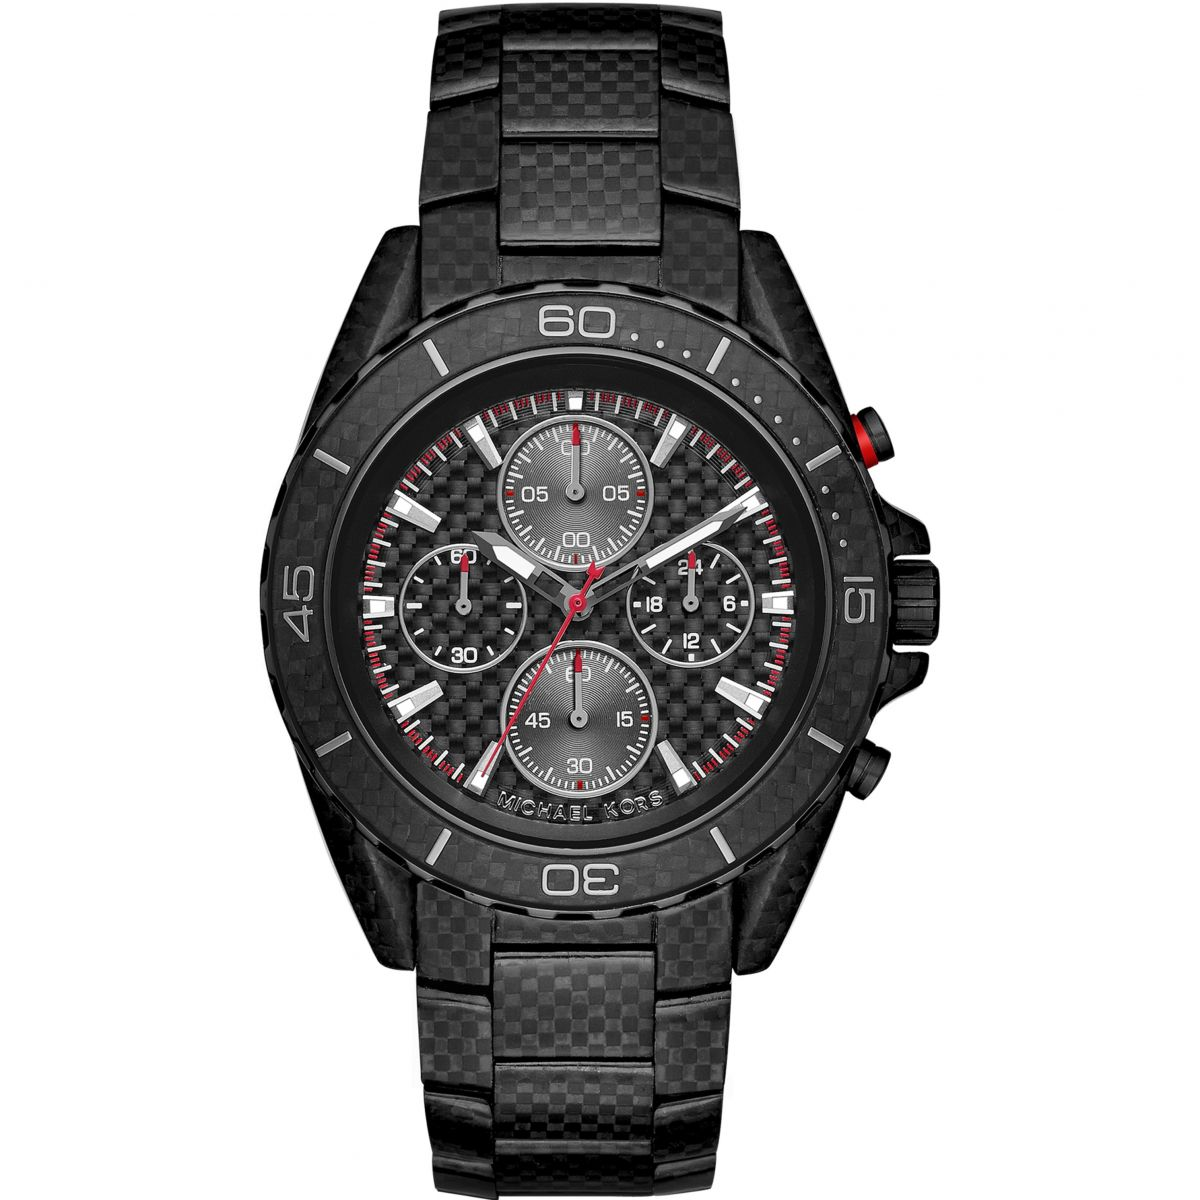 Gents Michael Kors Jetmaster Chronograph Watch MK WatchShopcom - Invoice sample word michael kors outlet online store